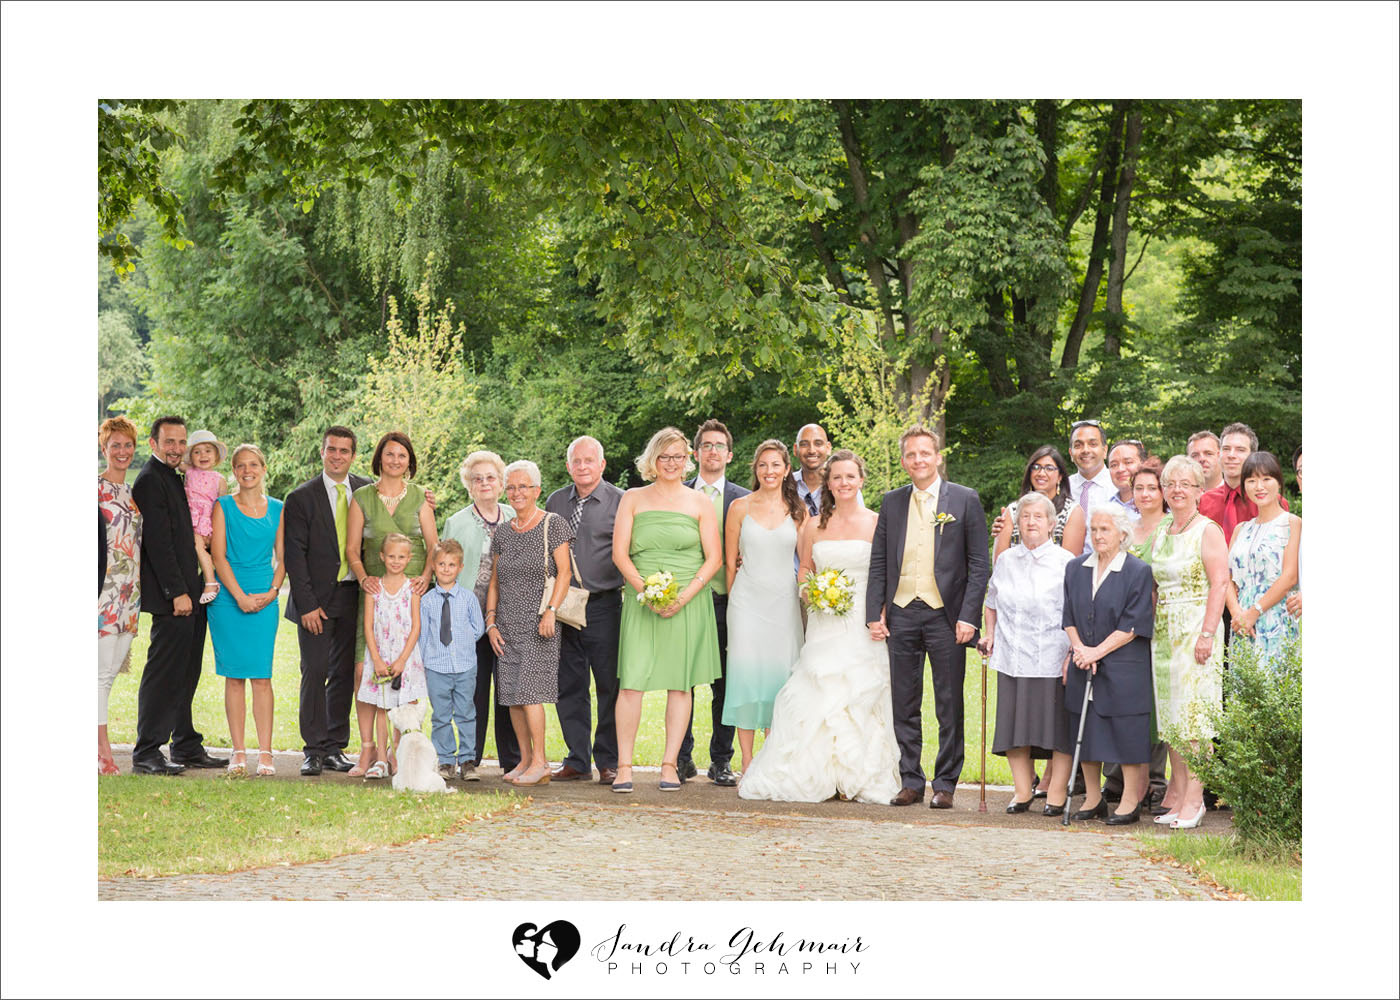 039_heiraten_am_see_spitzvilla_sandra_gehmair